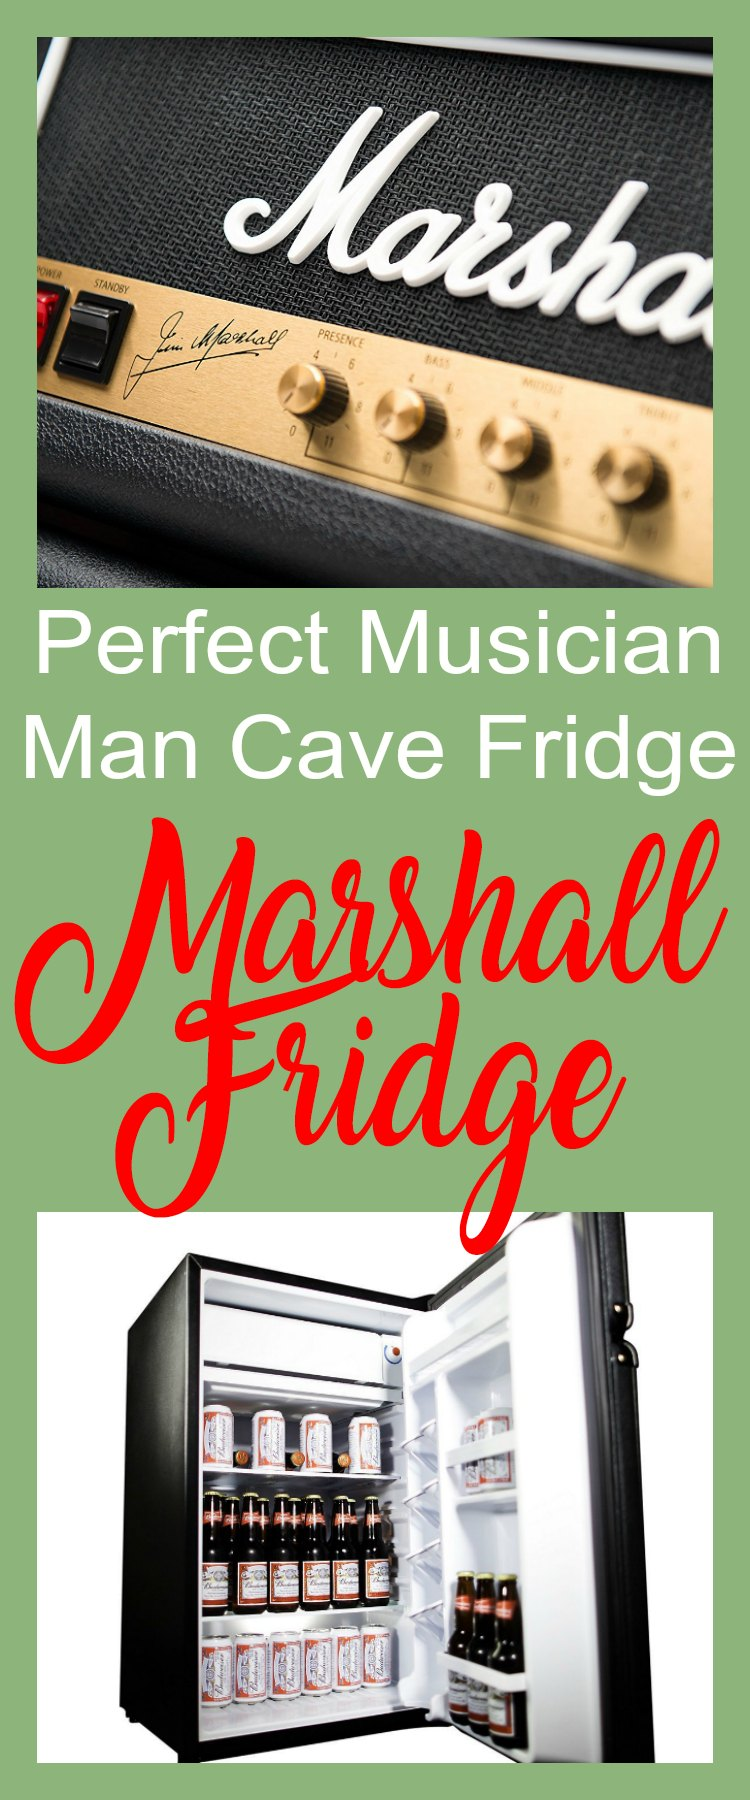 Marshall Fridge - The Perfect Man Cave Fridge